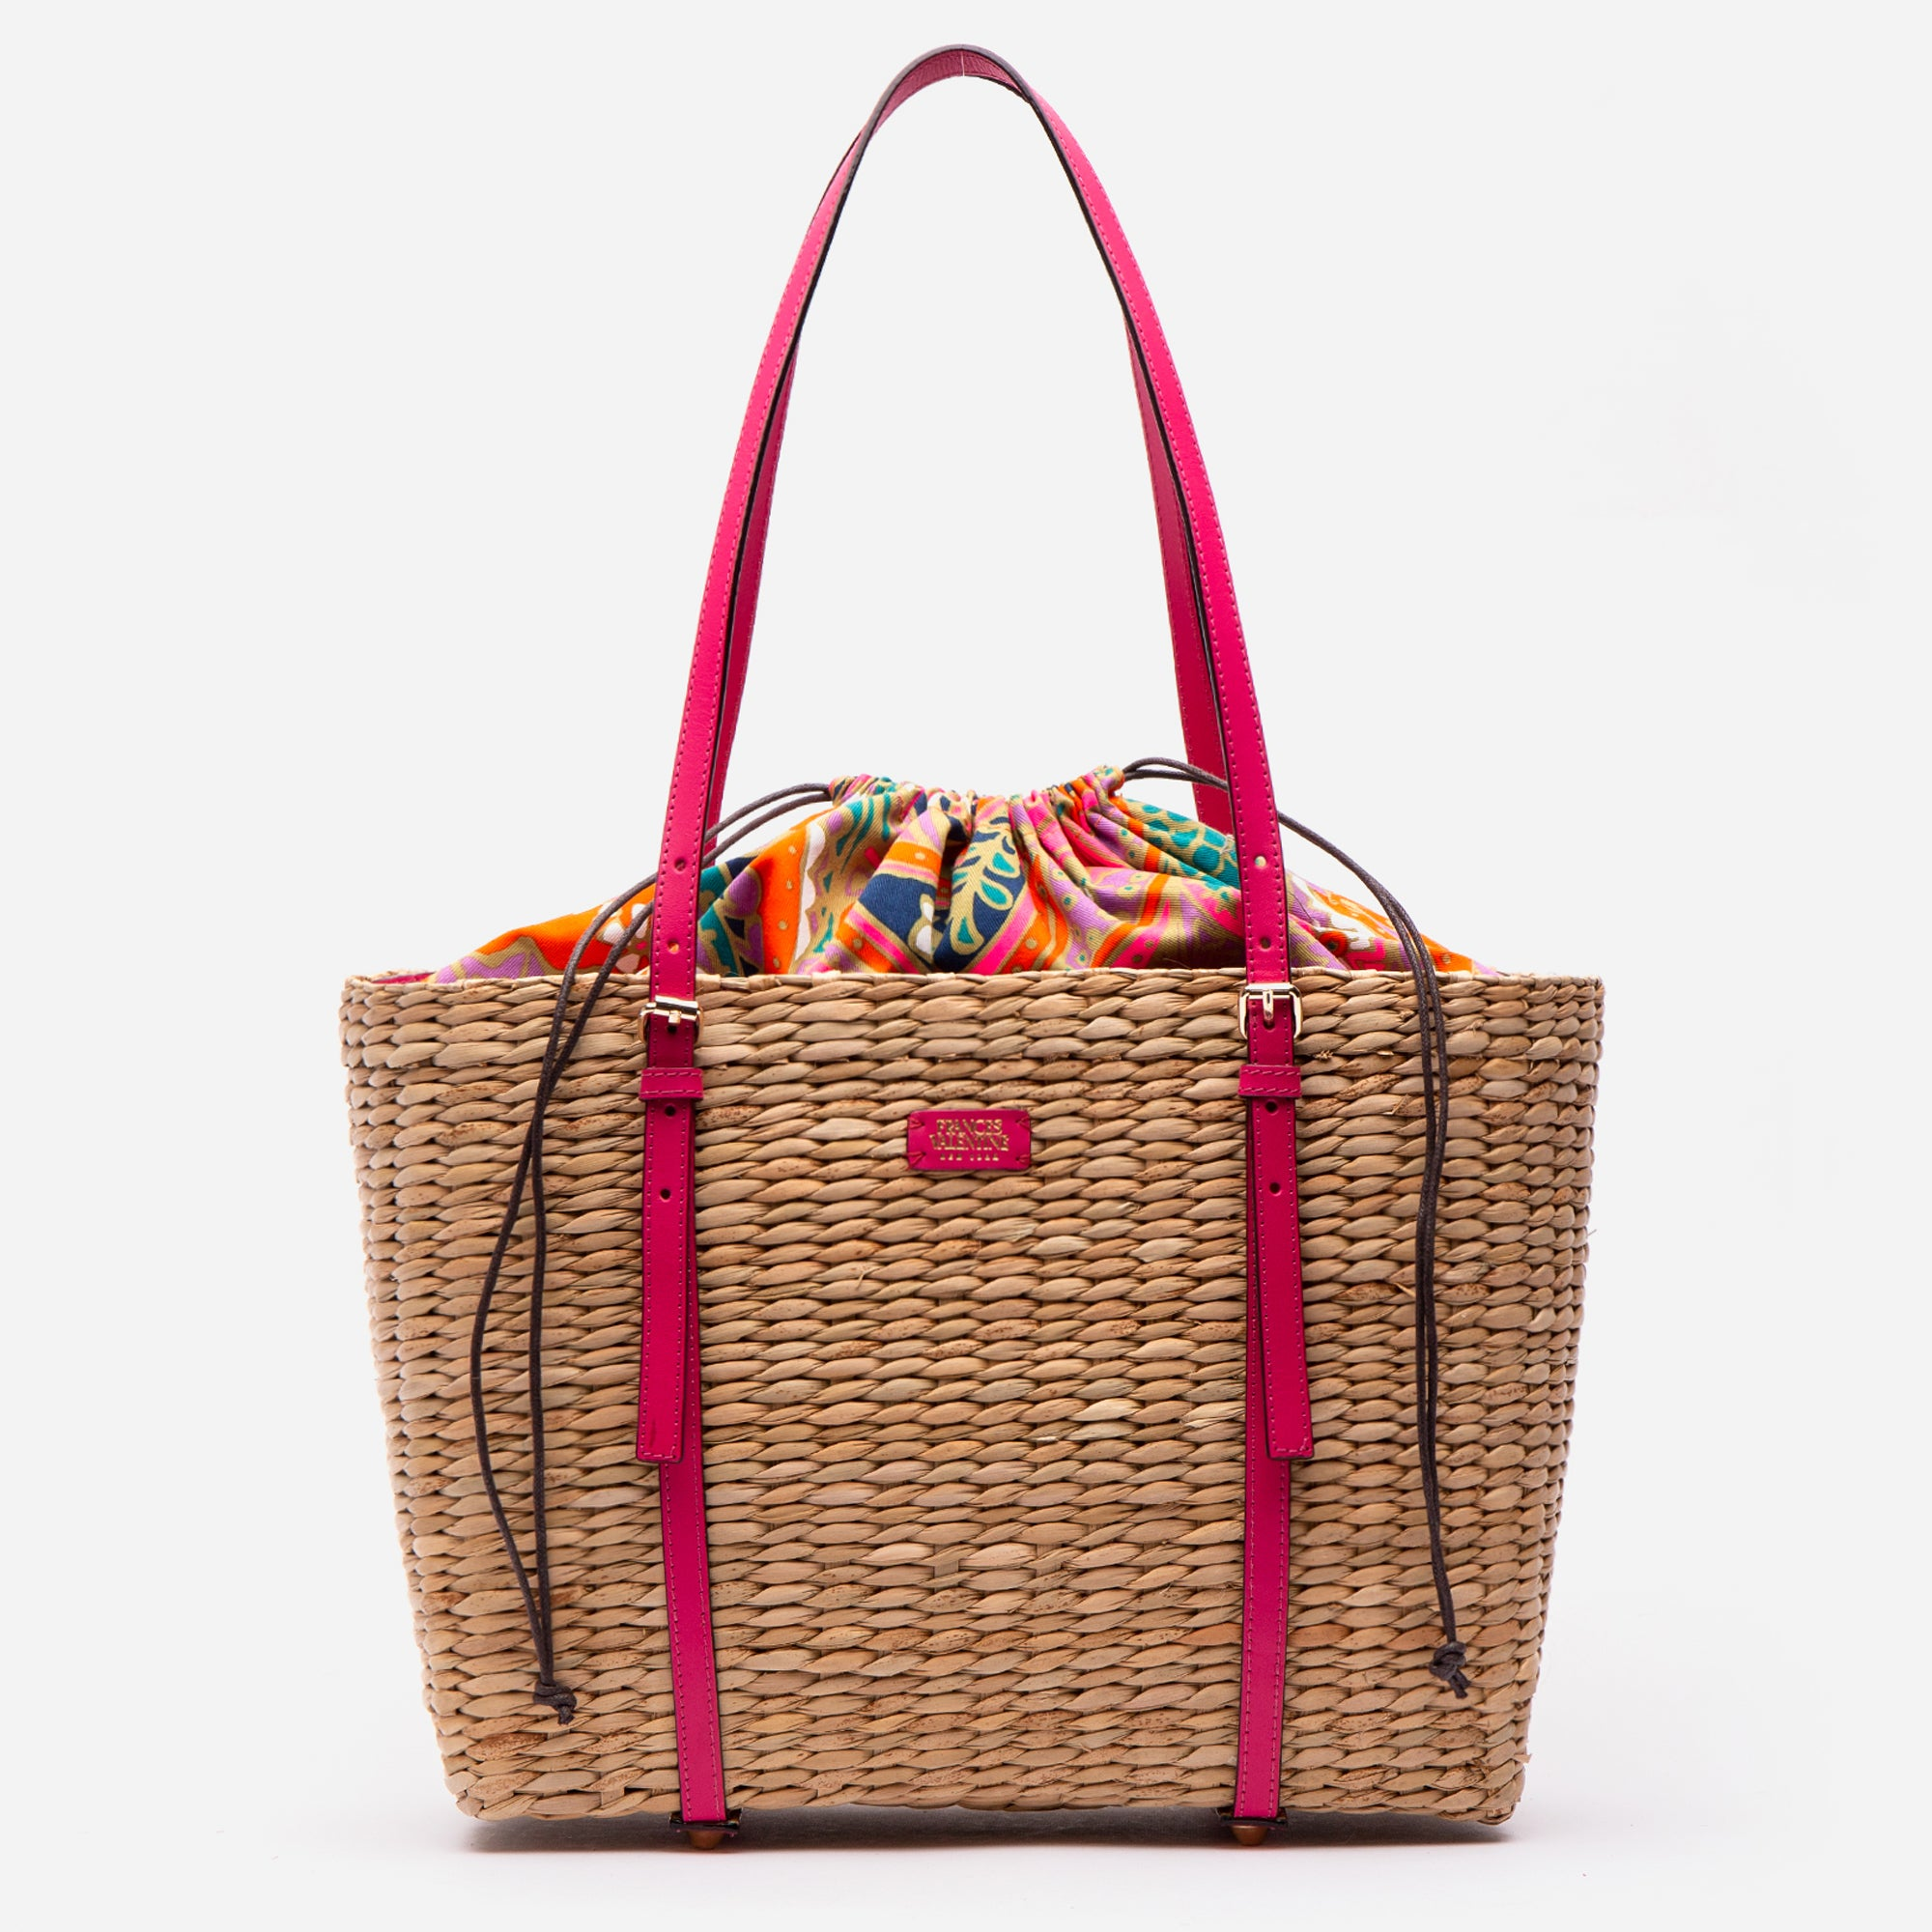 Large Woven Basket Tote Bright Pink Vachetta - Frances Valentine